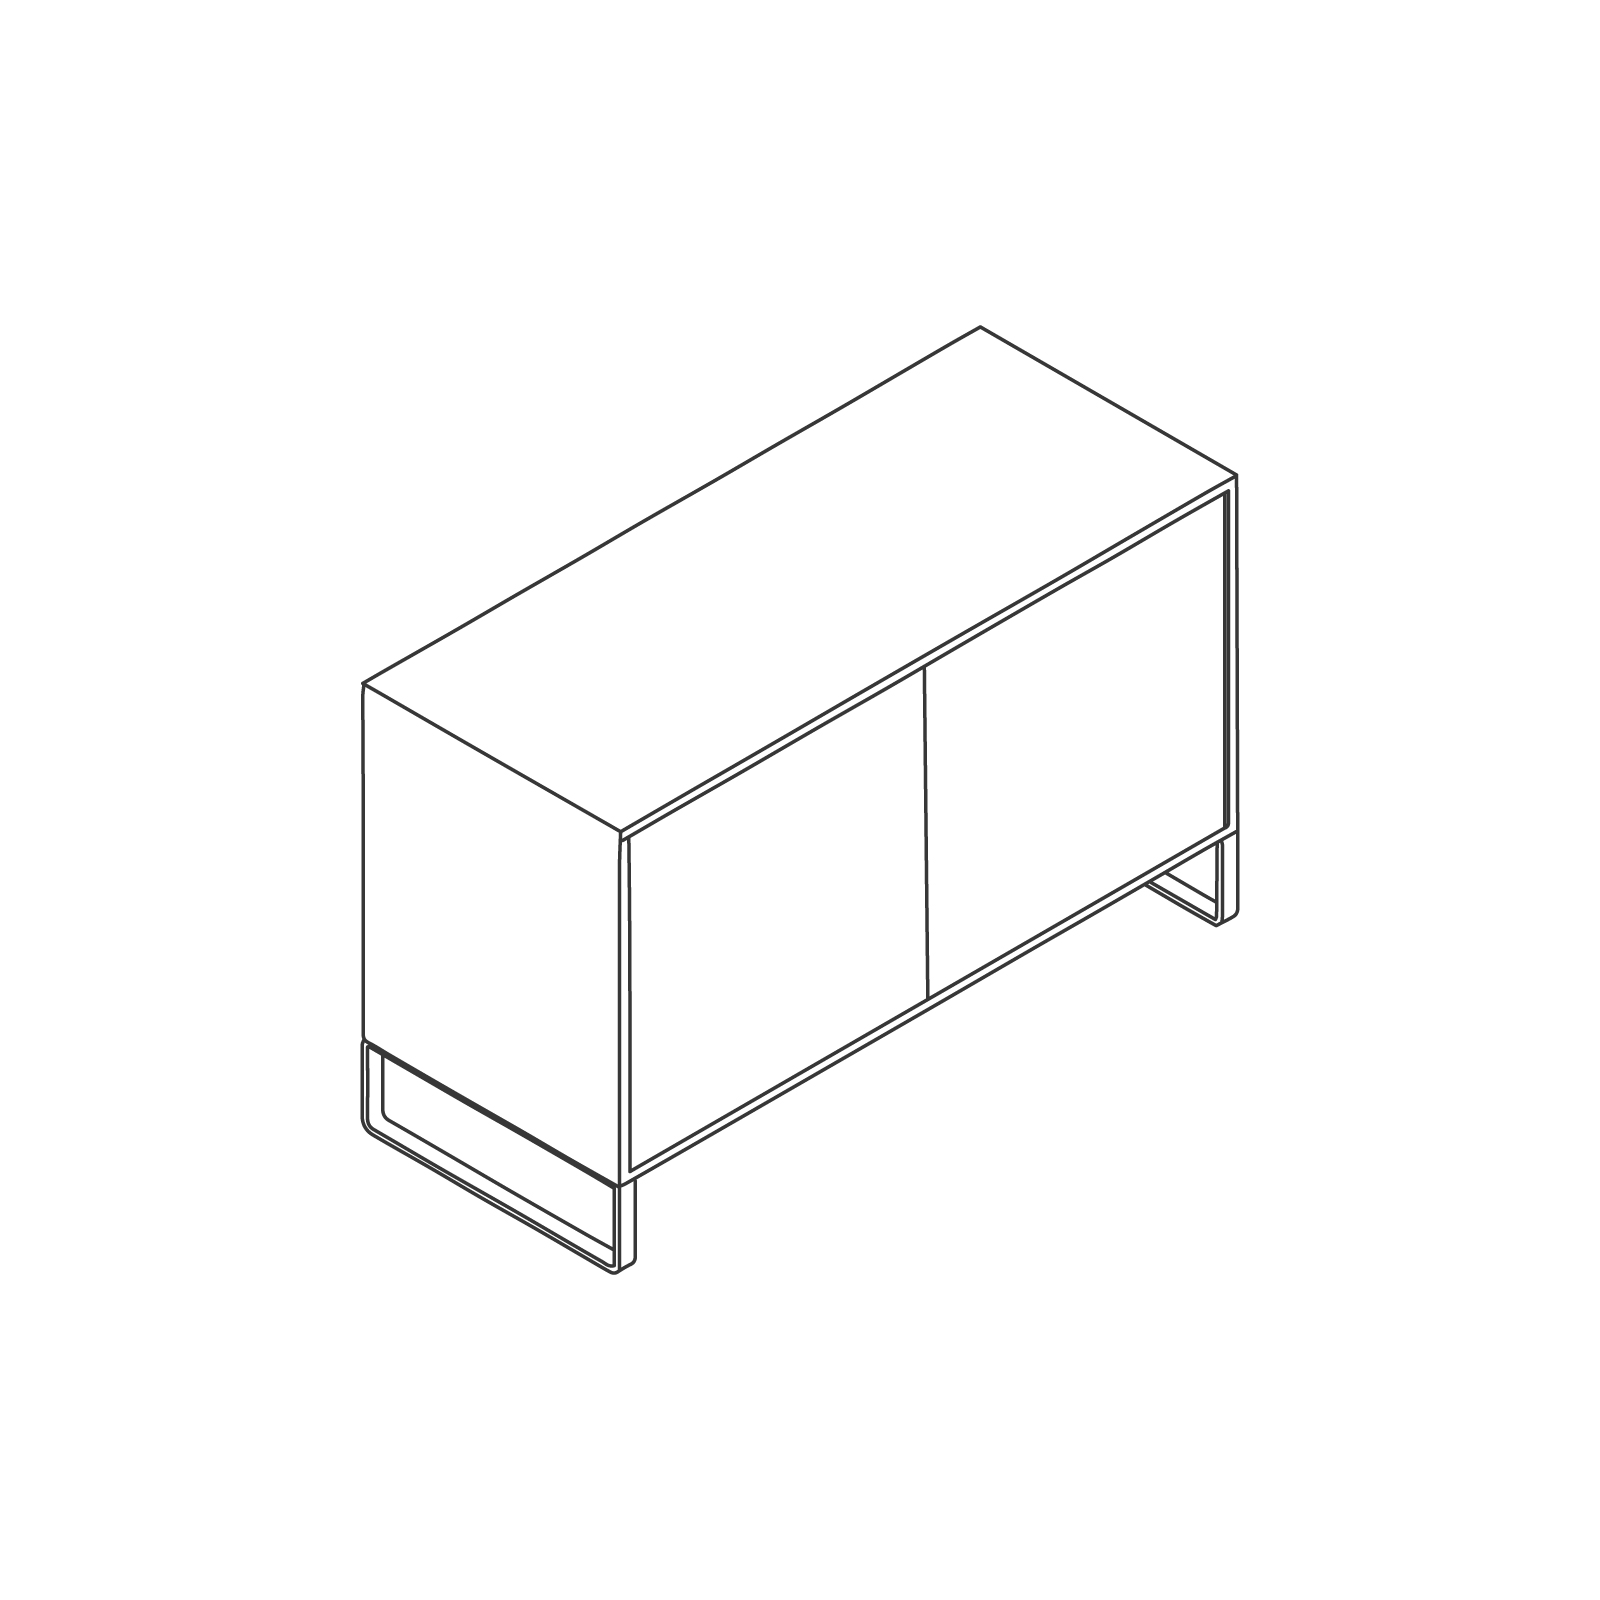 A line drawing of Sideboard Storage–2 Door.